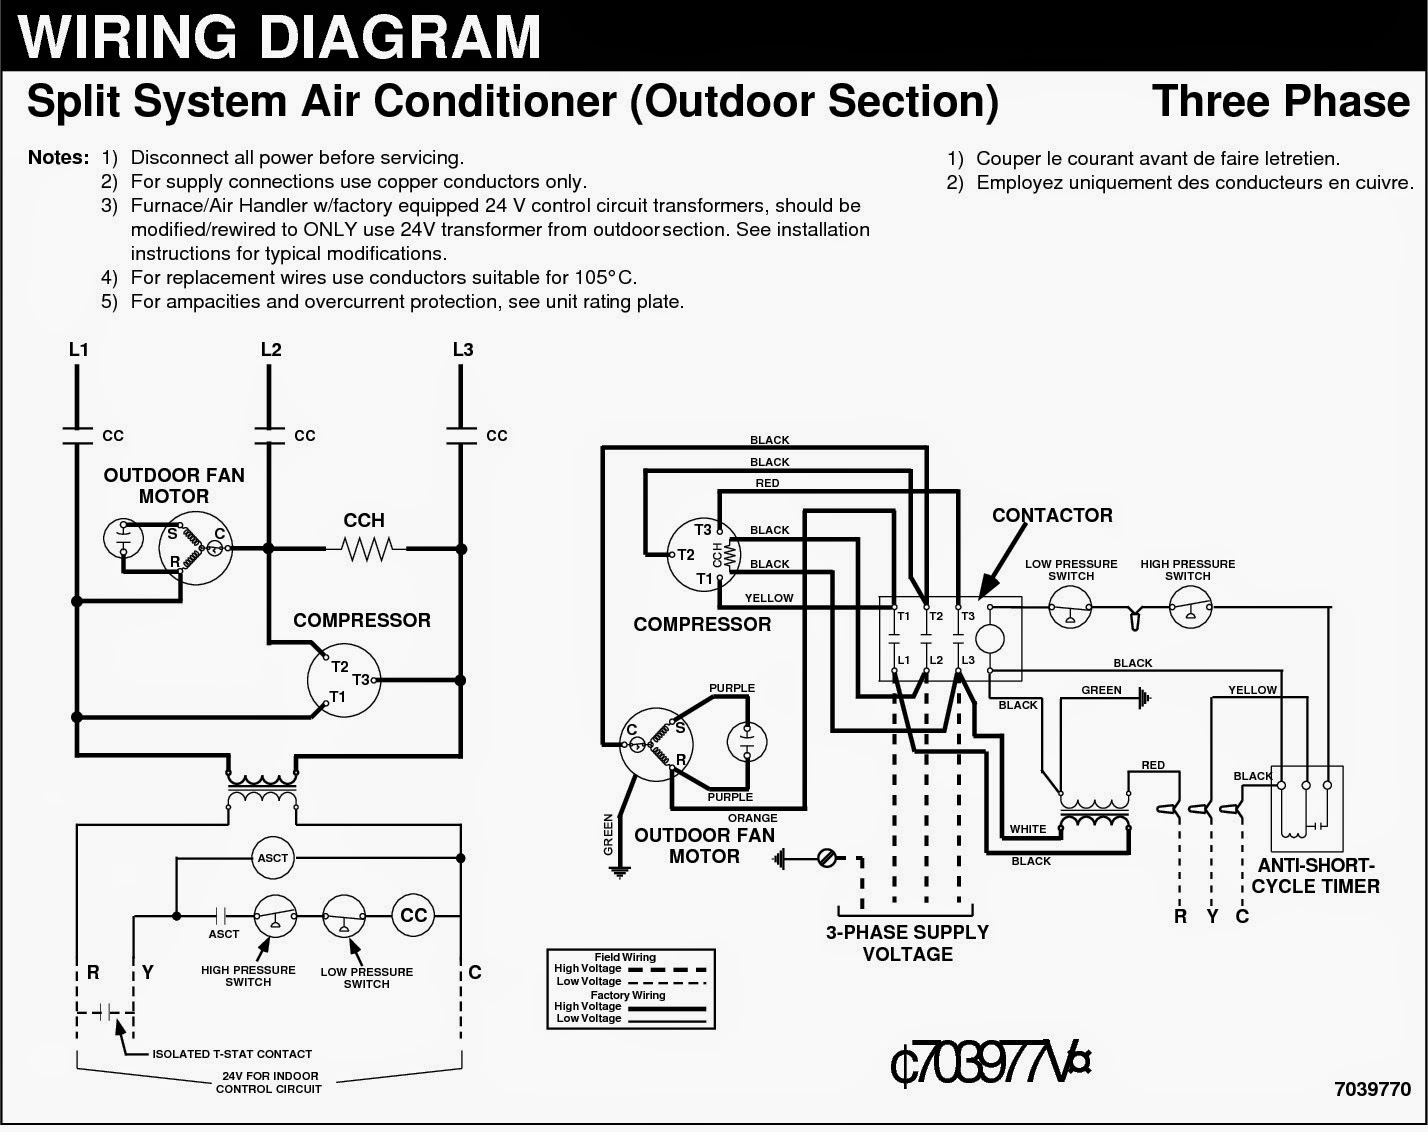 3+phase electrical wiring diagrams for air conditioning systems part two typical house ac wiring diagram at soozxer.org